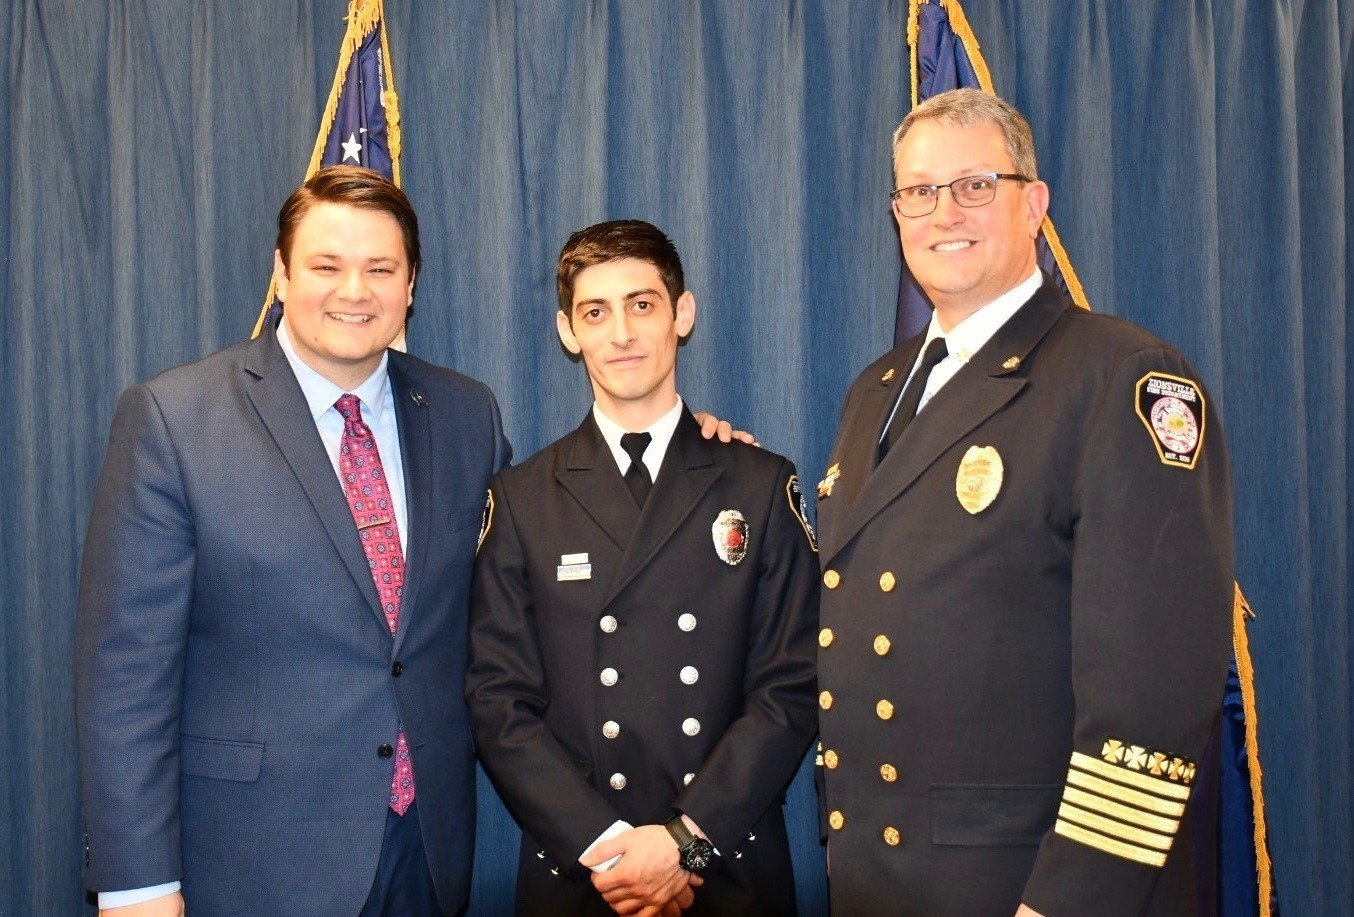 (from left to right): Sen. Ford, Firefighter Paramedic Abdullakh Abamislimov, Chief James VanGorder